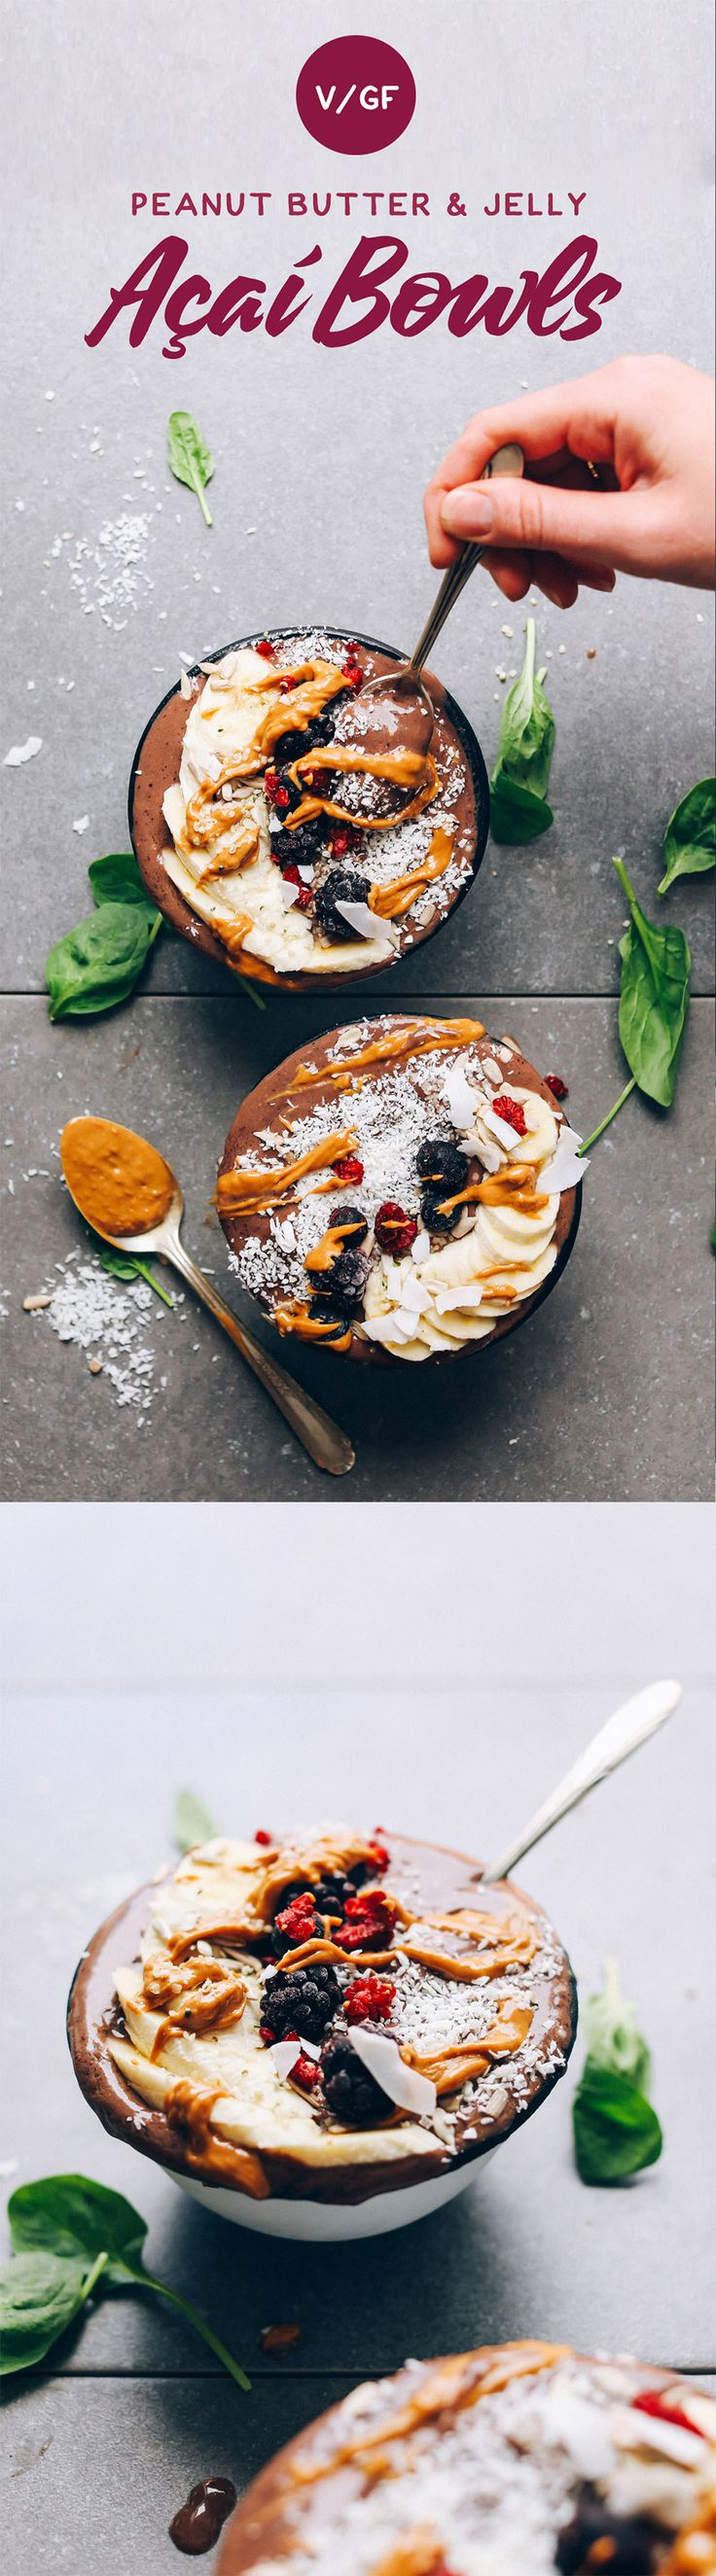 PEANUT BUTTER & JELLY AÇAÍ BOWLS - AMAZING PB&J Acai Bowls! Low sugar, super healthy, tastes like a MILKSHAKE!